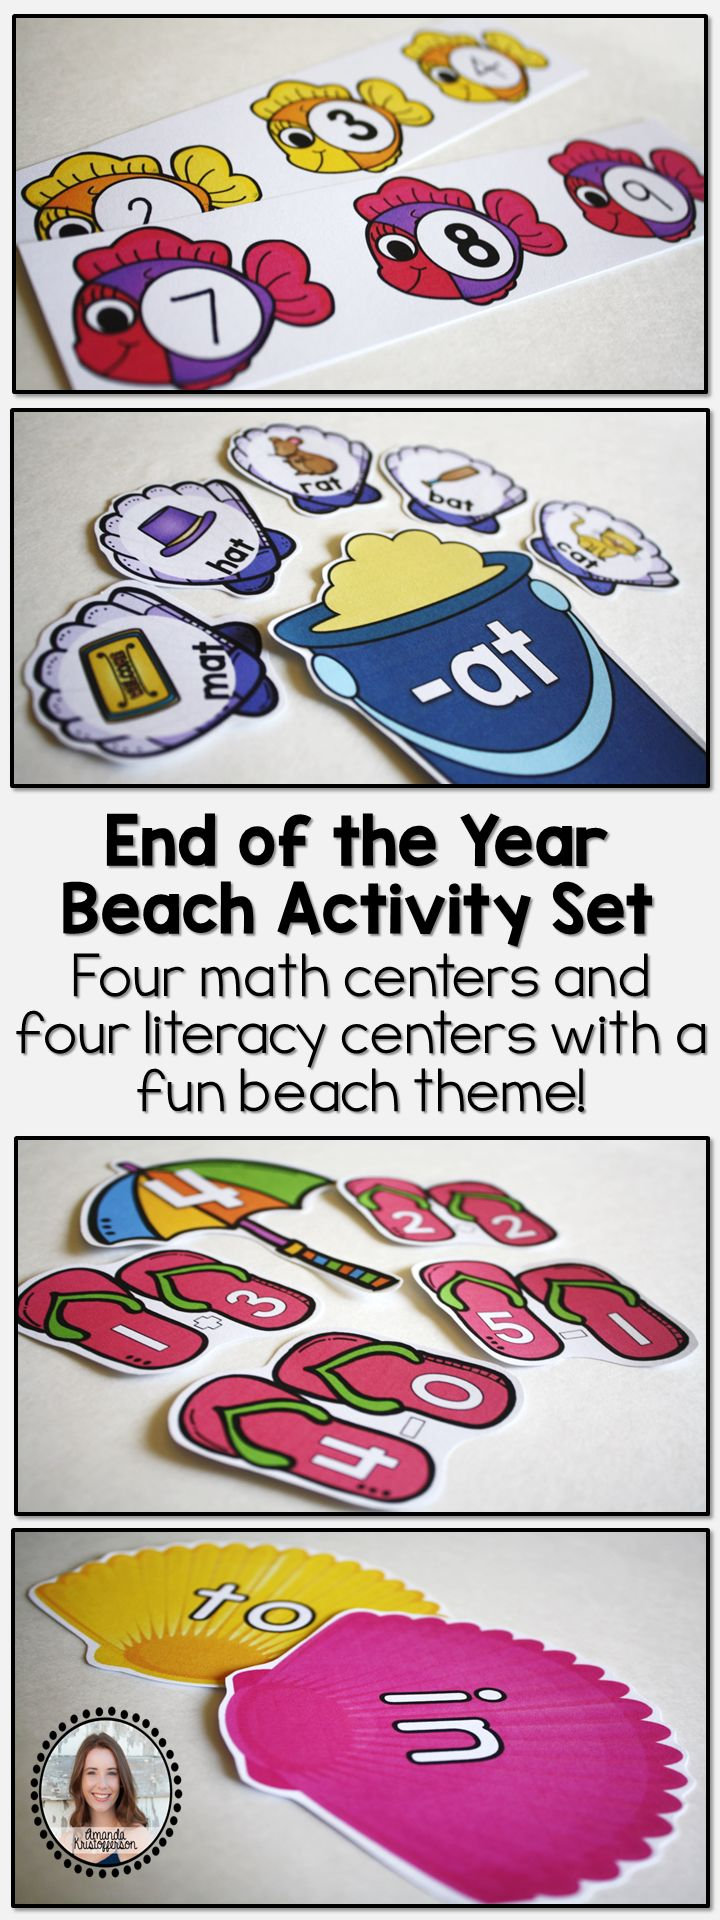 This set of math and literacy centers are perfect to use during your last months of school or during a beach unit! This product includes four math centers and four literacy centers. I find that four is the perfect number for independent centers so that the fifth can be a guided learning table with the teacher. Centers are fun, colorful, and engaging for students! Below is a description of each activity included within this bundle.